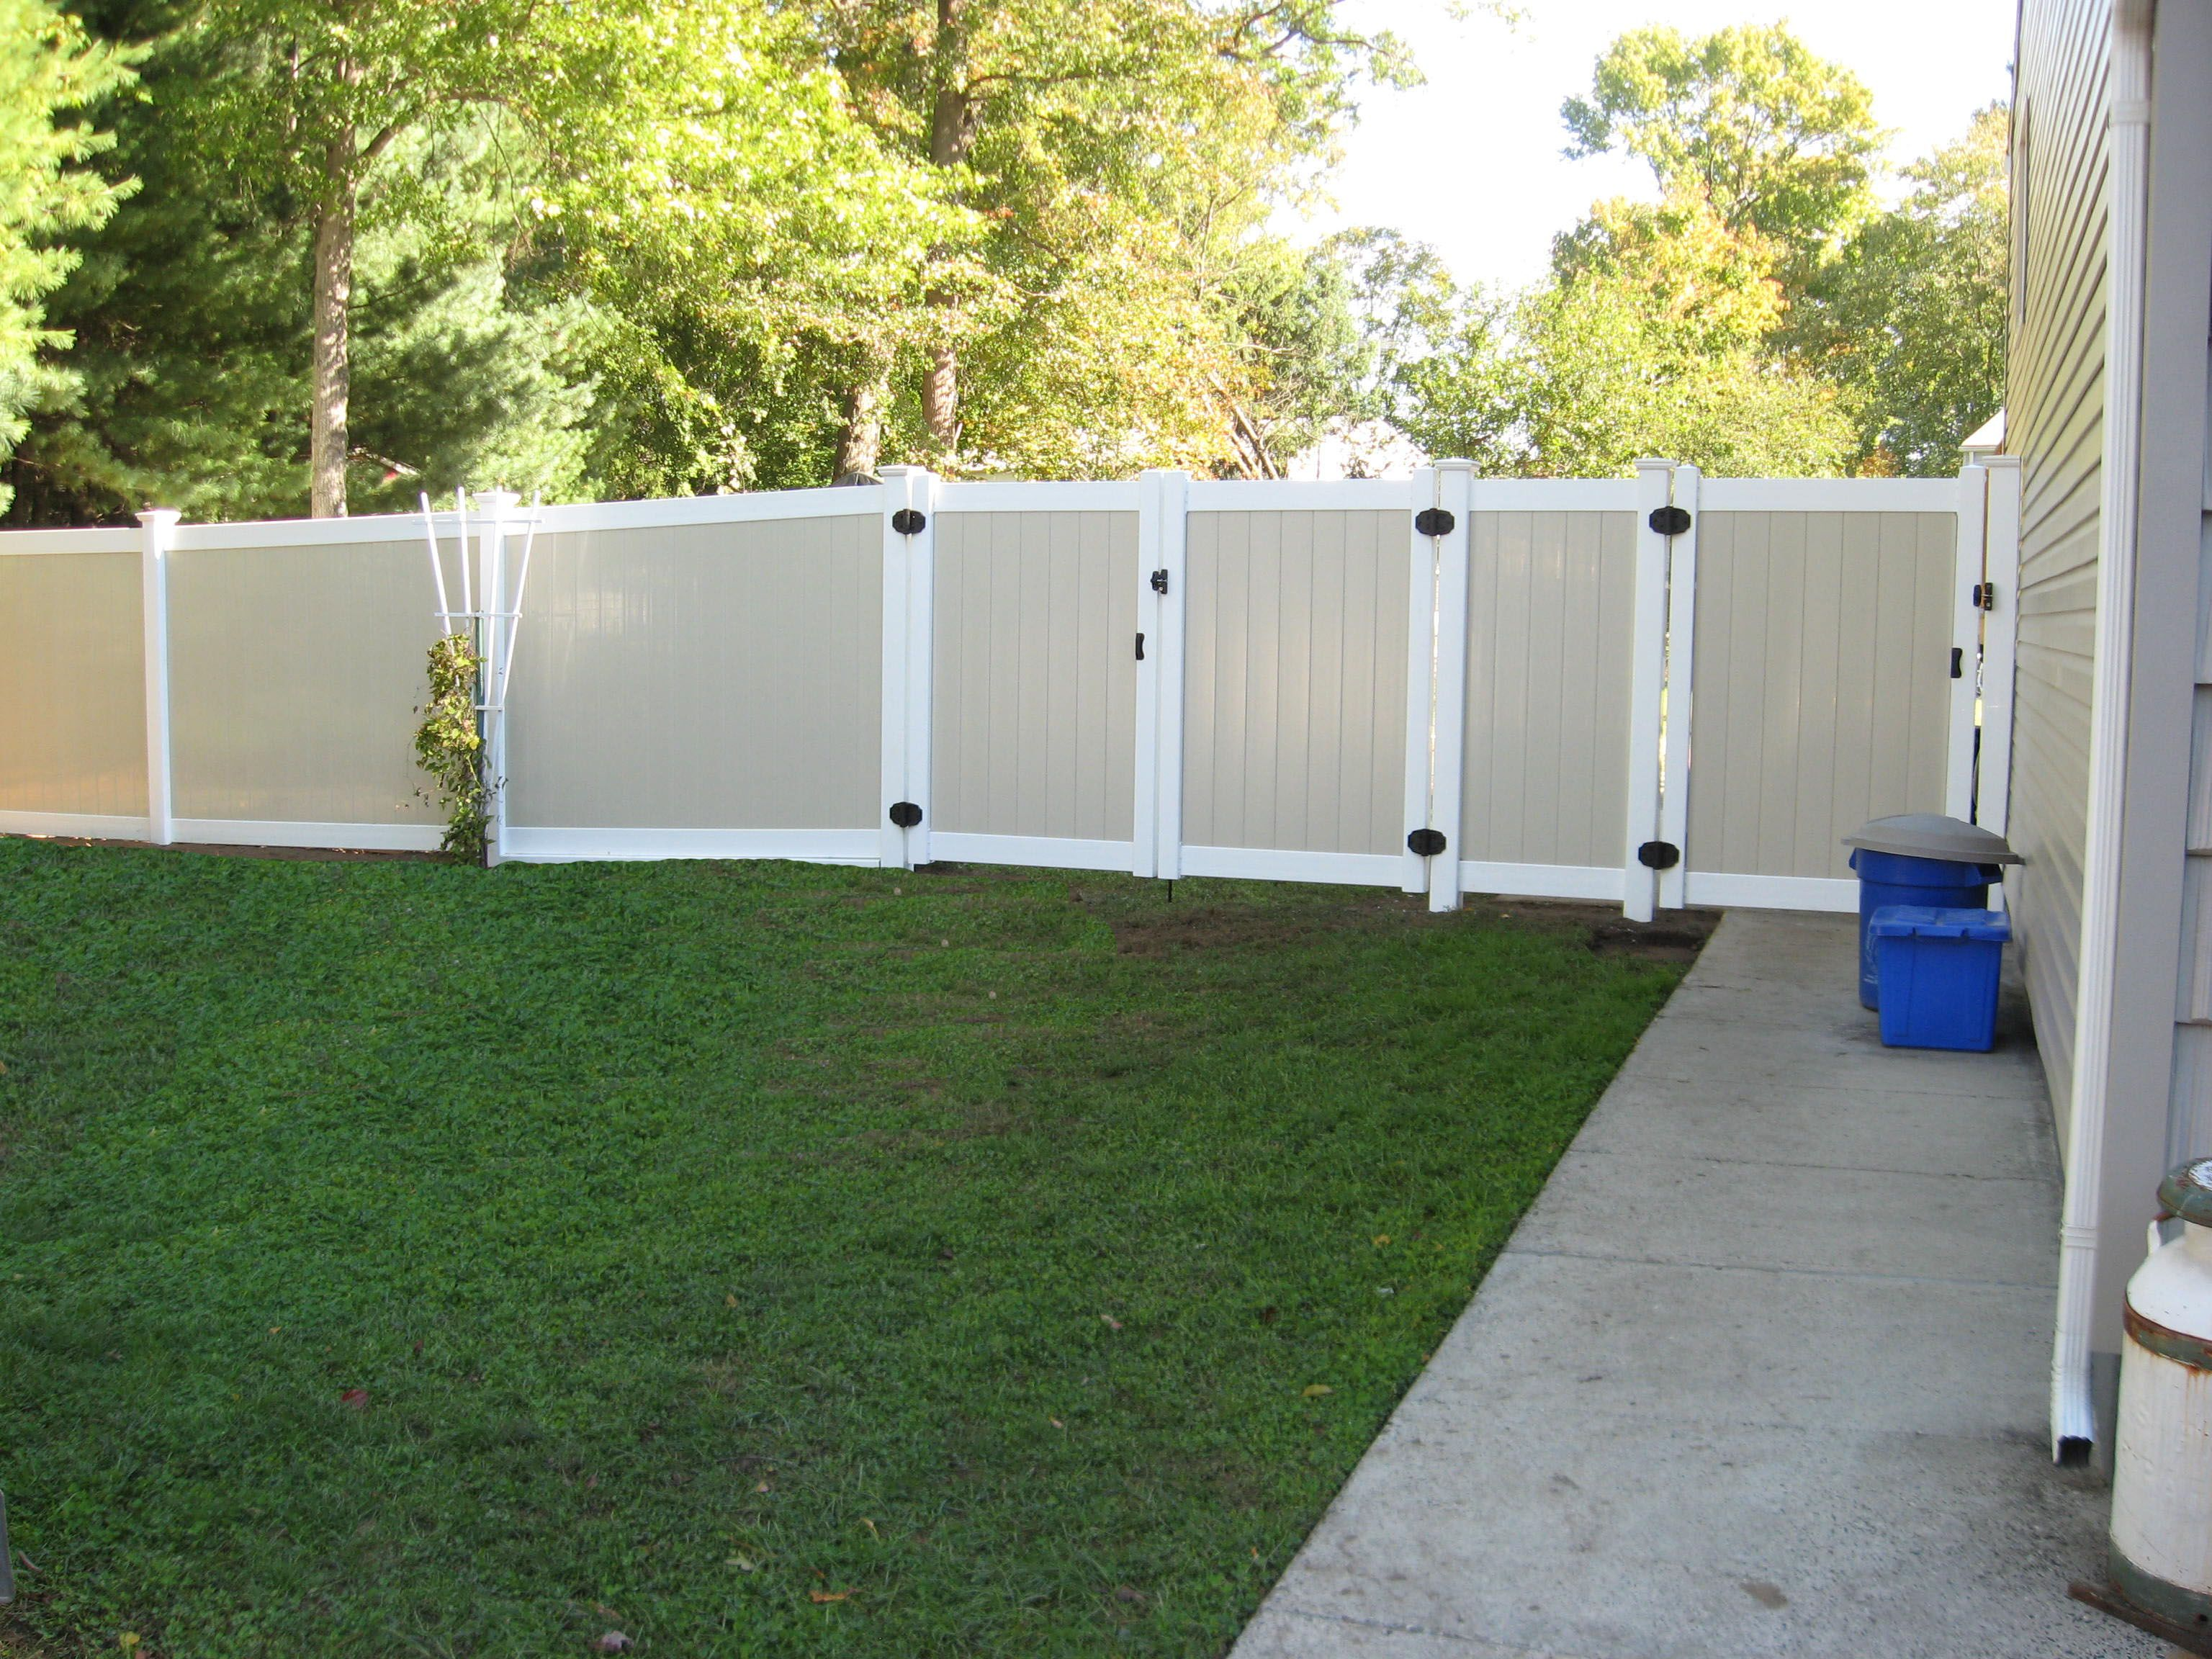 Cheap Vinyl Fence Install Pvc Fence Panels For Sale In Uk Vinyl Fence Panels Vinyl Fence Fence Panels